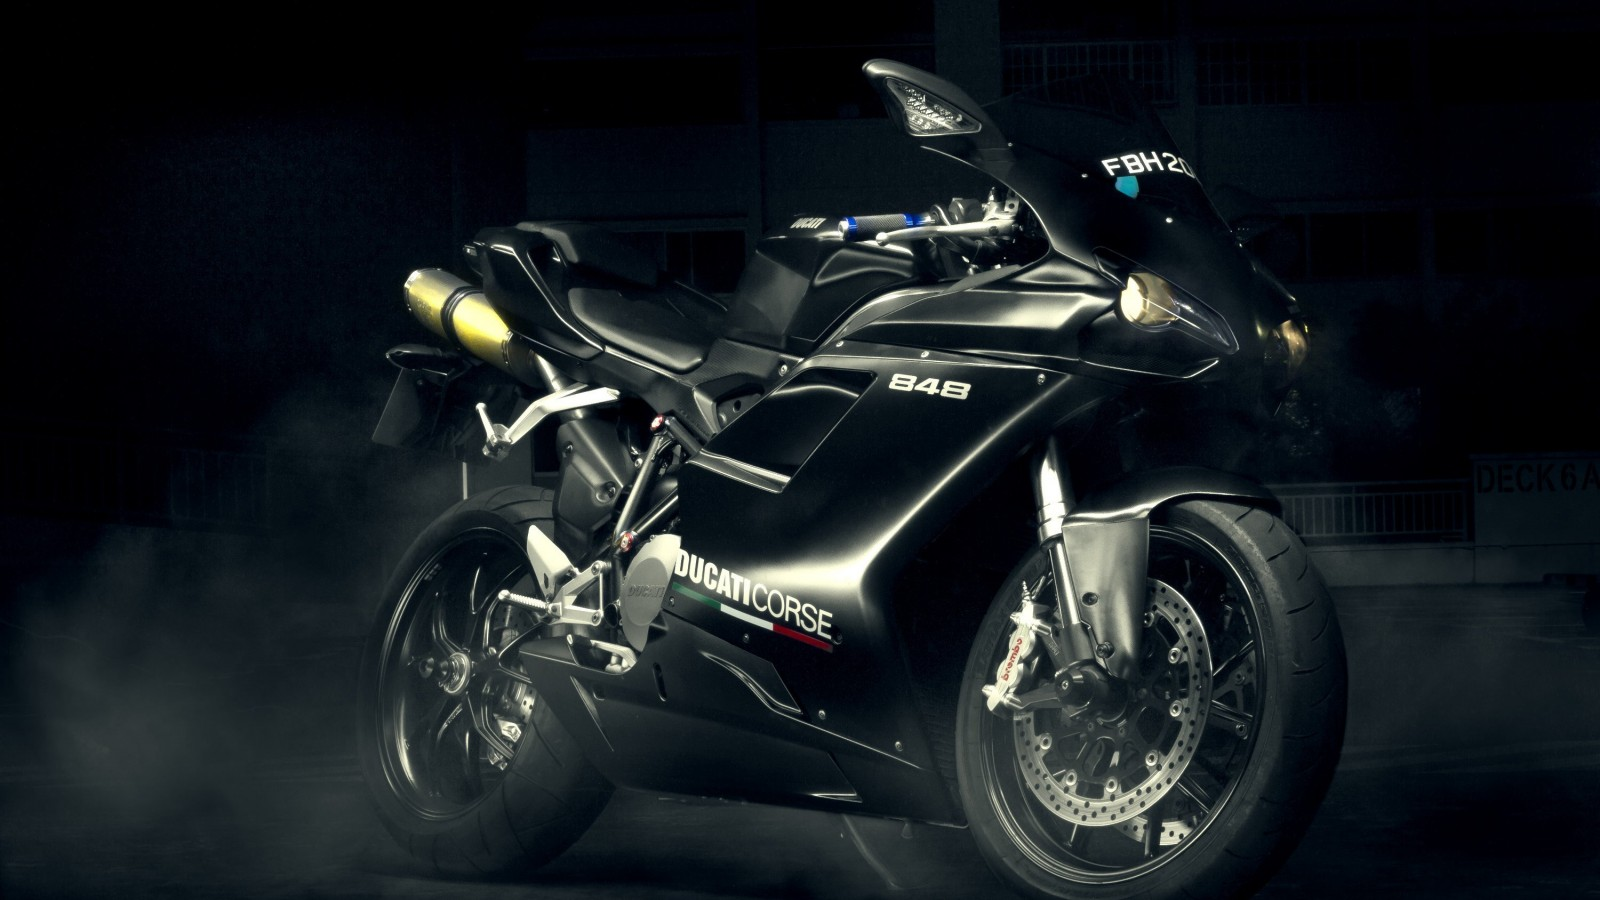 Ducati 848 Wallpaper for Desktop 1600x900